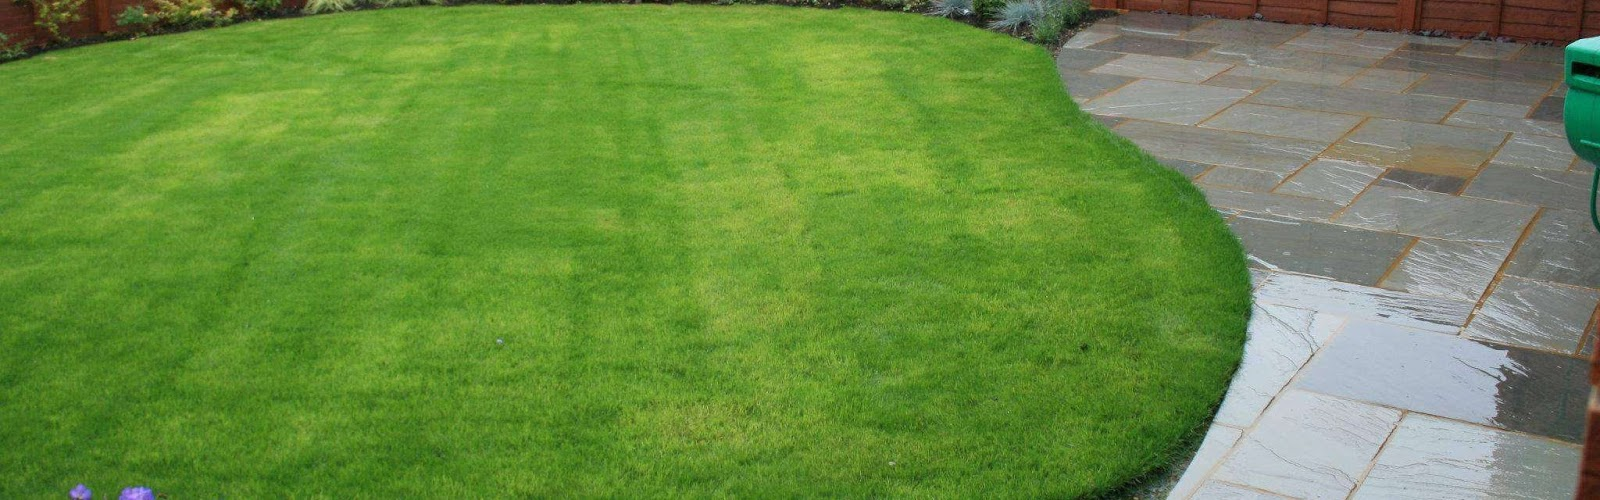 Lawns, Artificial Grass by Classical Landscapes Farnham